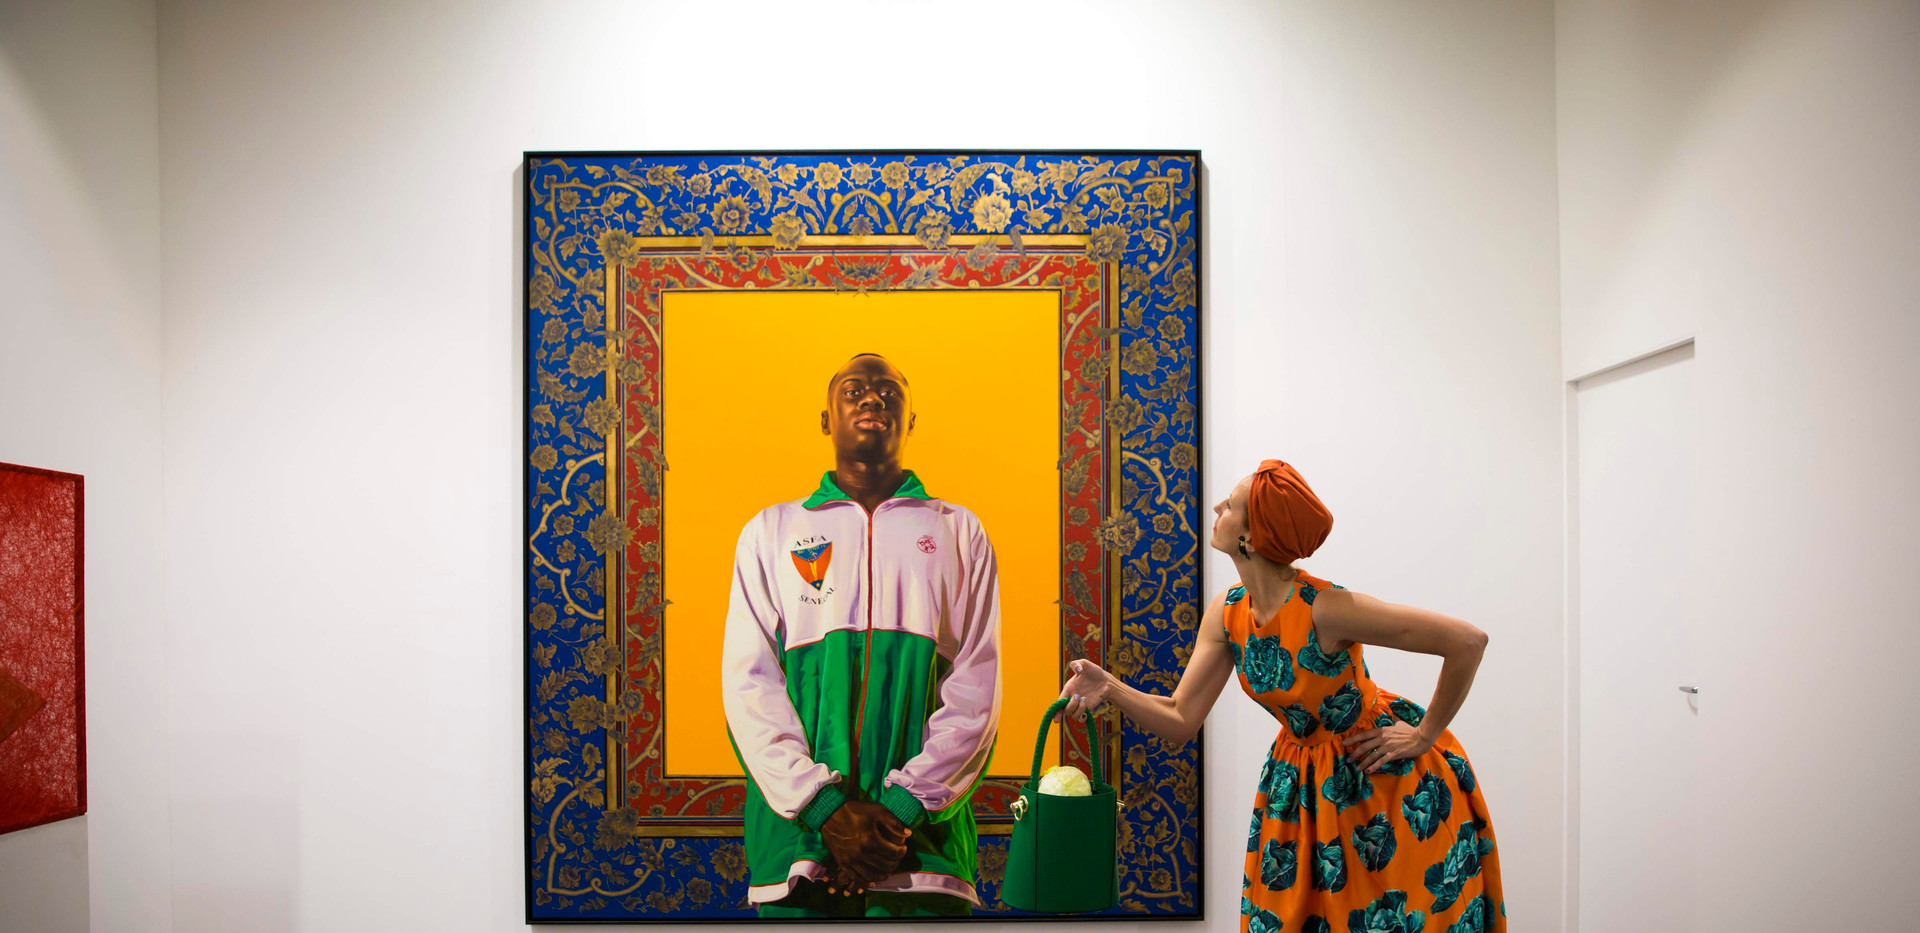 Silence with Idrissa Ndiaye by Kehinde Wiley